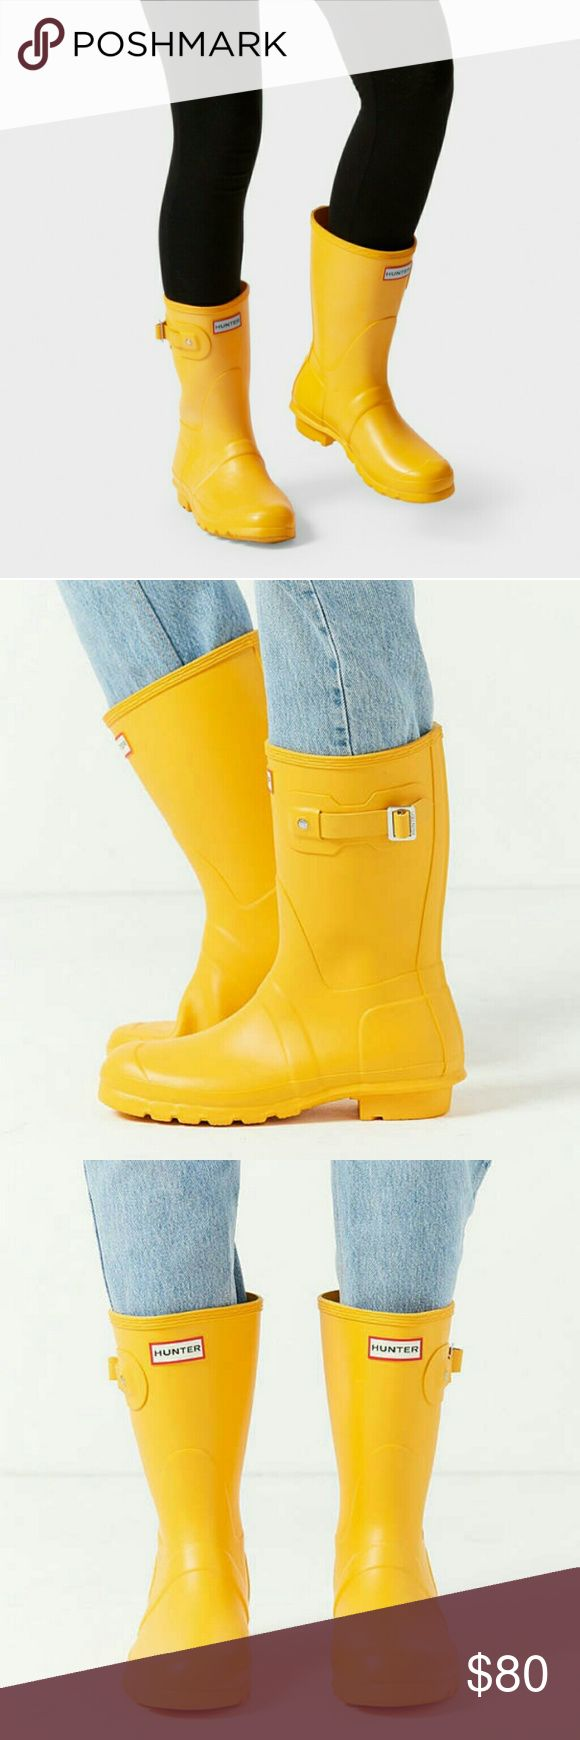 Hunter rain boots original short In good condition  Wore only like 3-4times  Very cute color and comfy!  Size 7mens / 8 women's  Checkout My listings for more awesome stuff!!! Hunter Boots Shoes Winter & Rain Boots